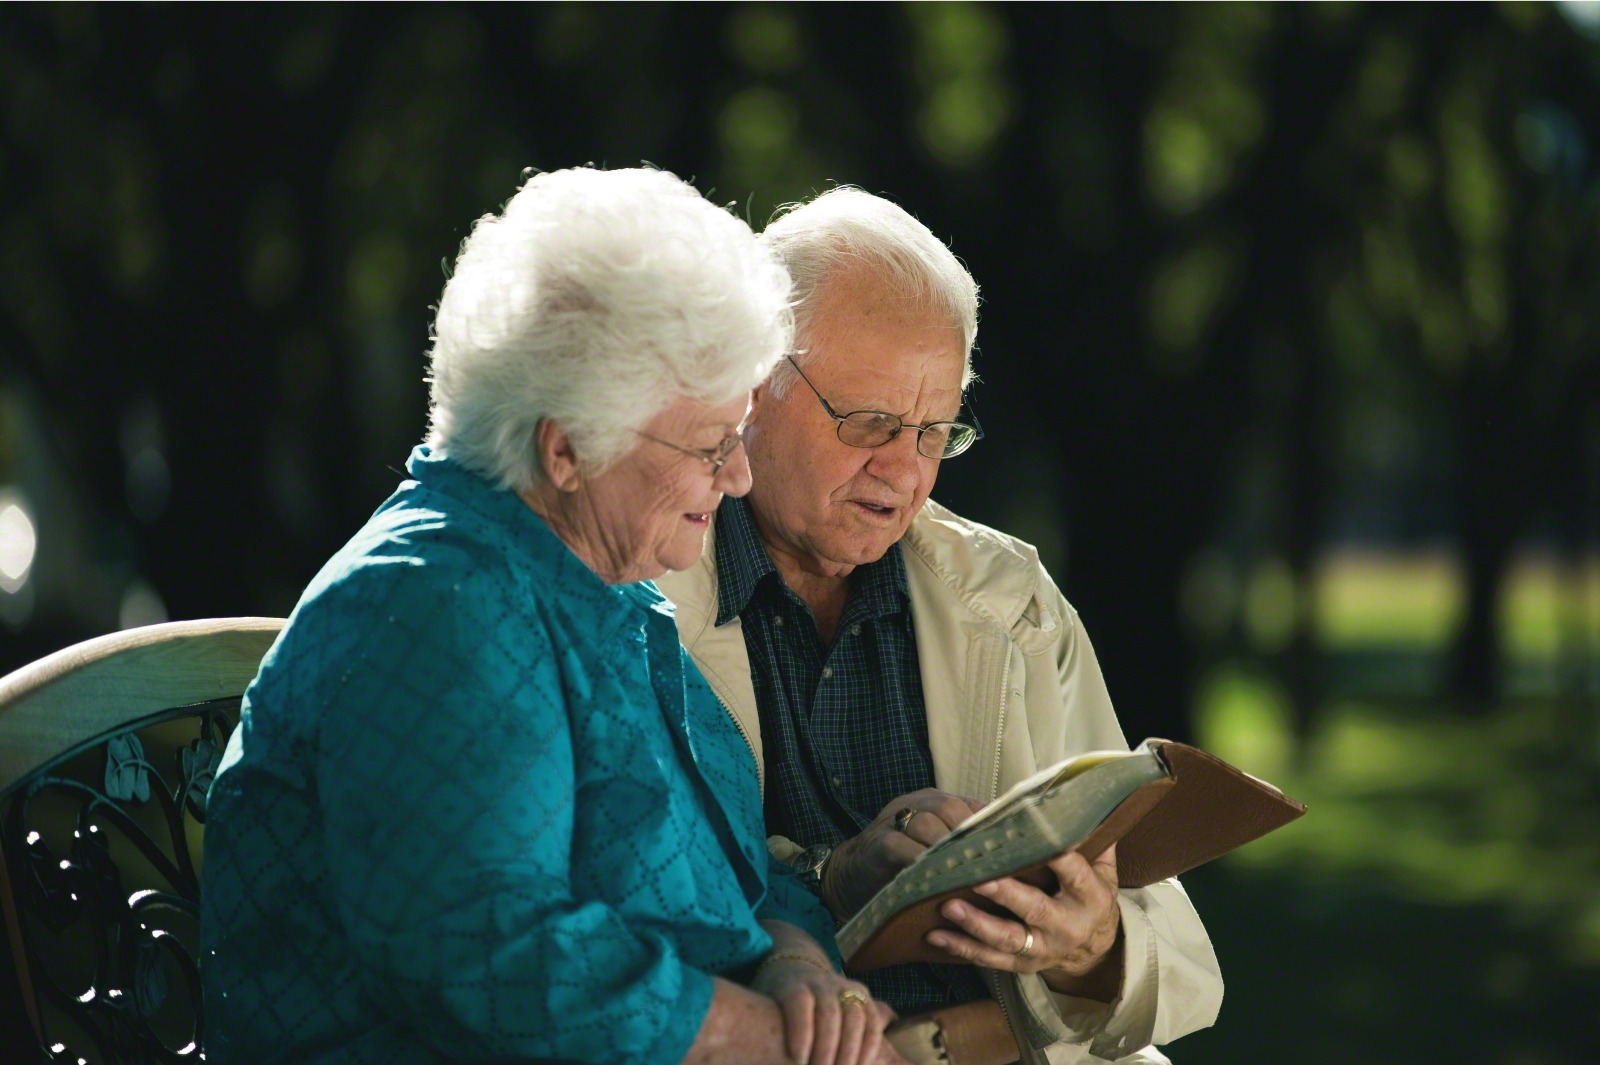 church view senior dating site How the church can minister to single senior adults by dennis franck reaching and ministering to and with people in the local church in america today is more complex than it was in the 60s and 70s.